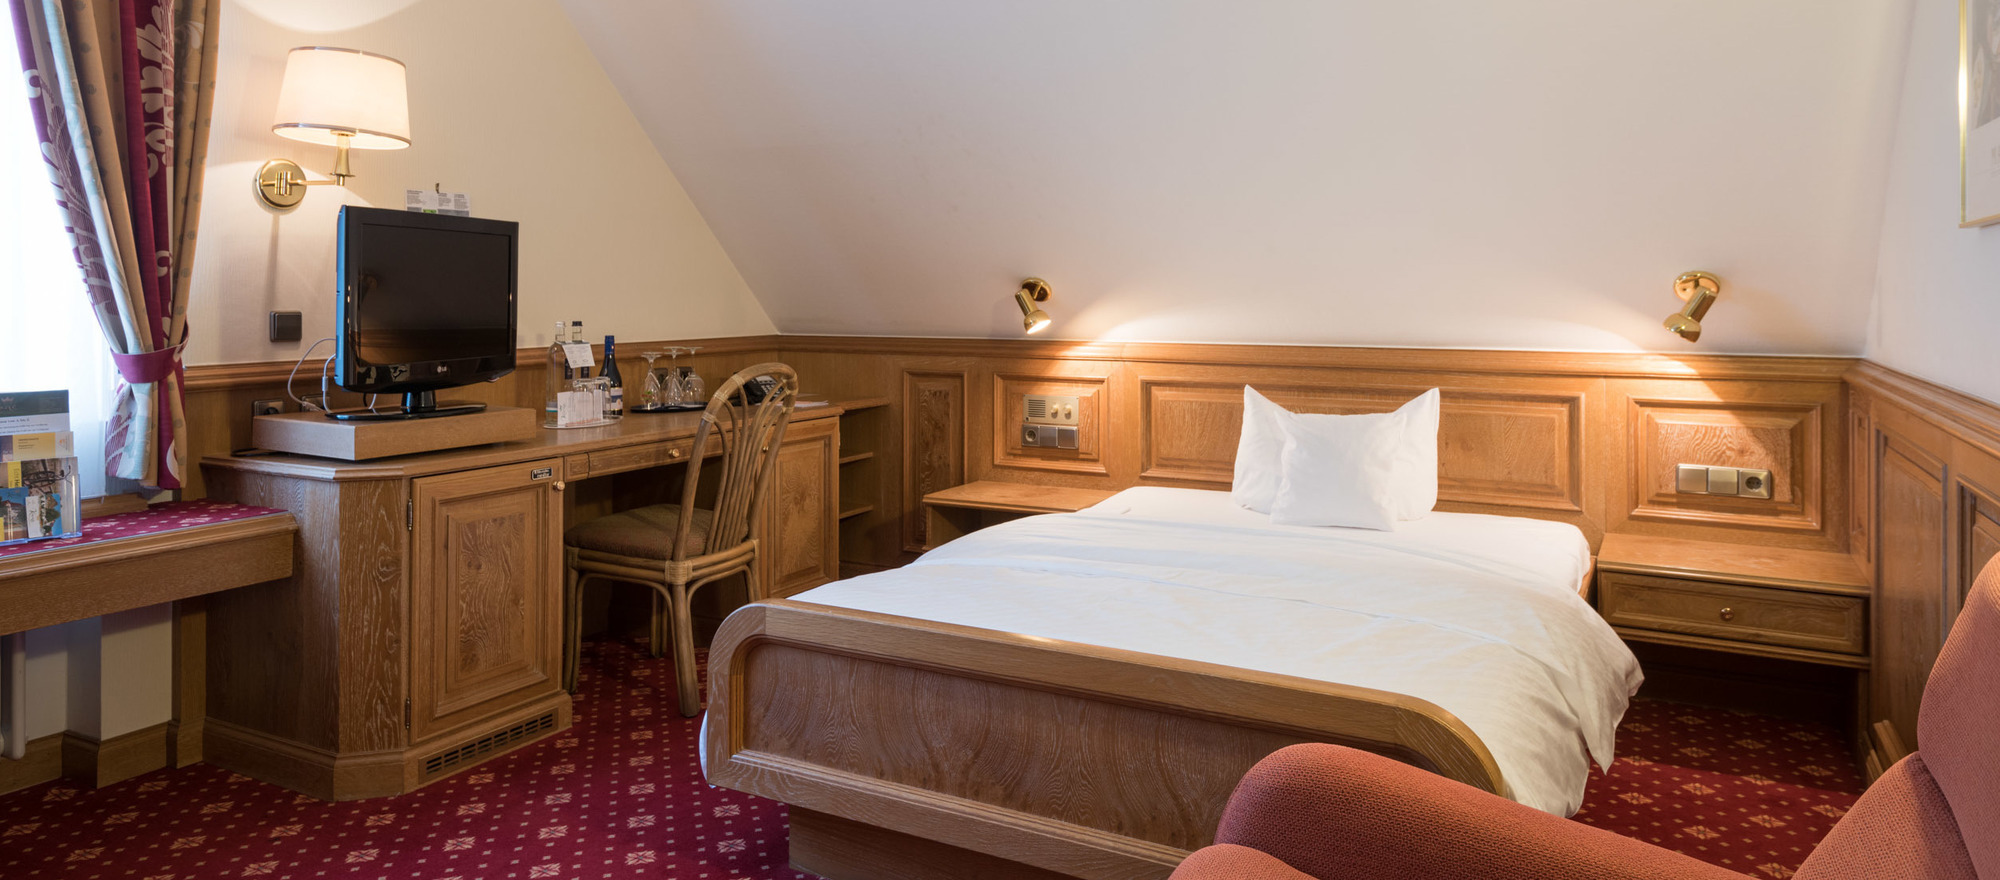 Single room in the Ringhotel Krone in Friedrichshafen, 4 stars superior hotel at Lake Constance